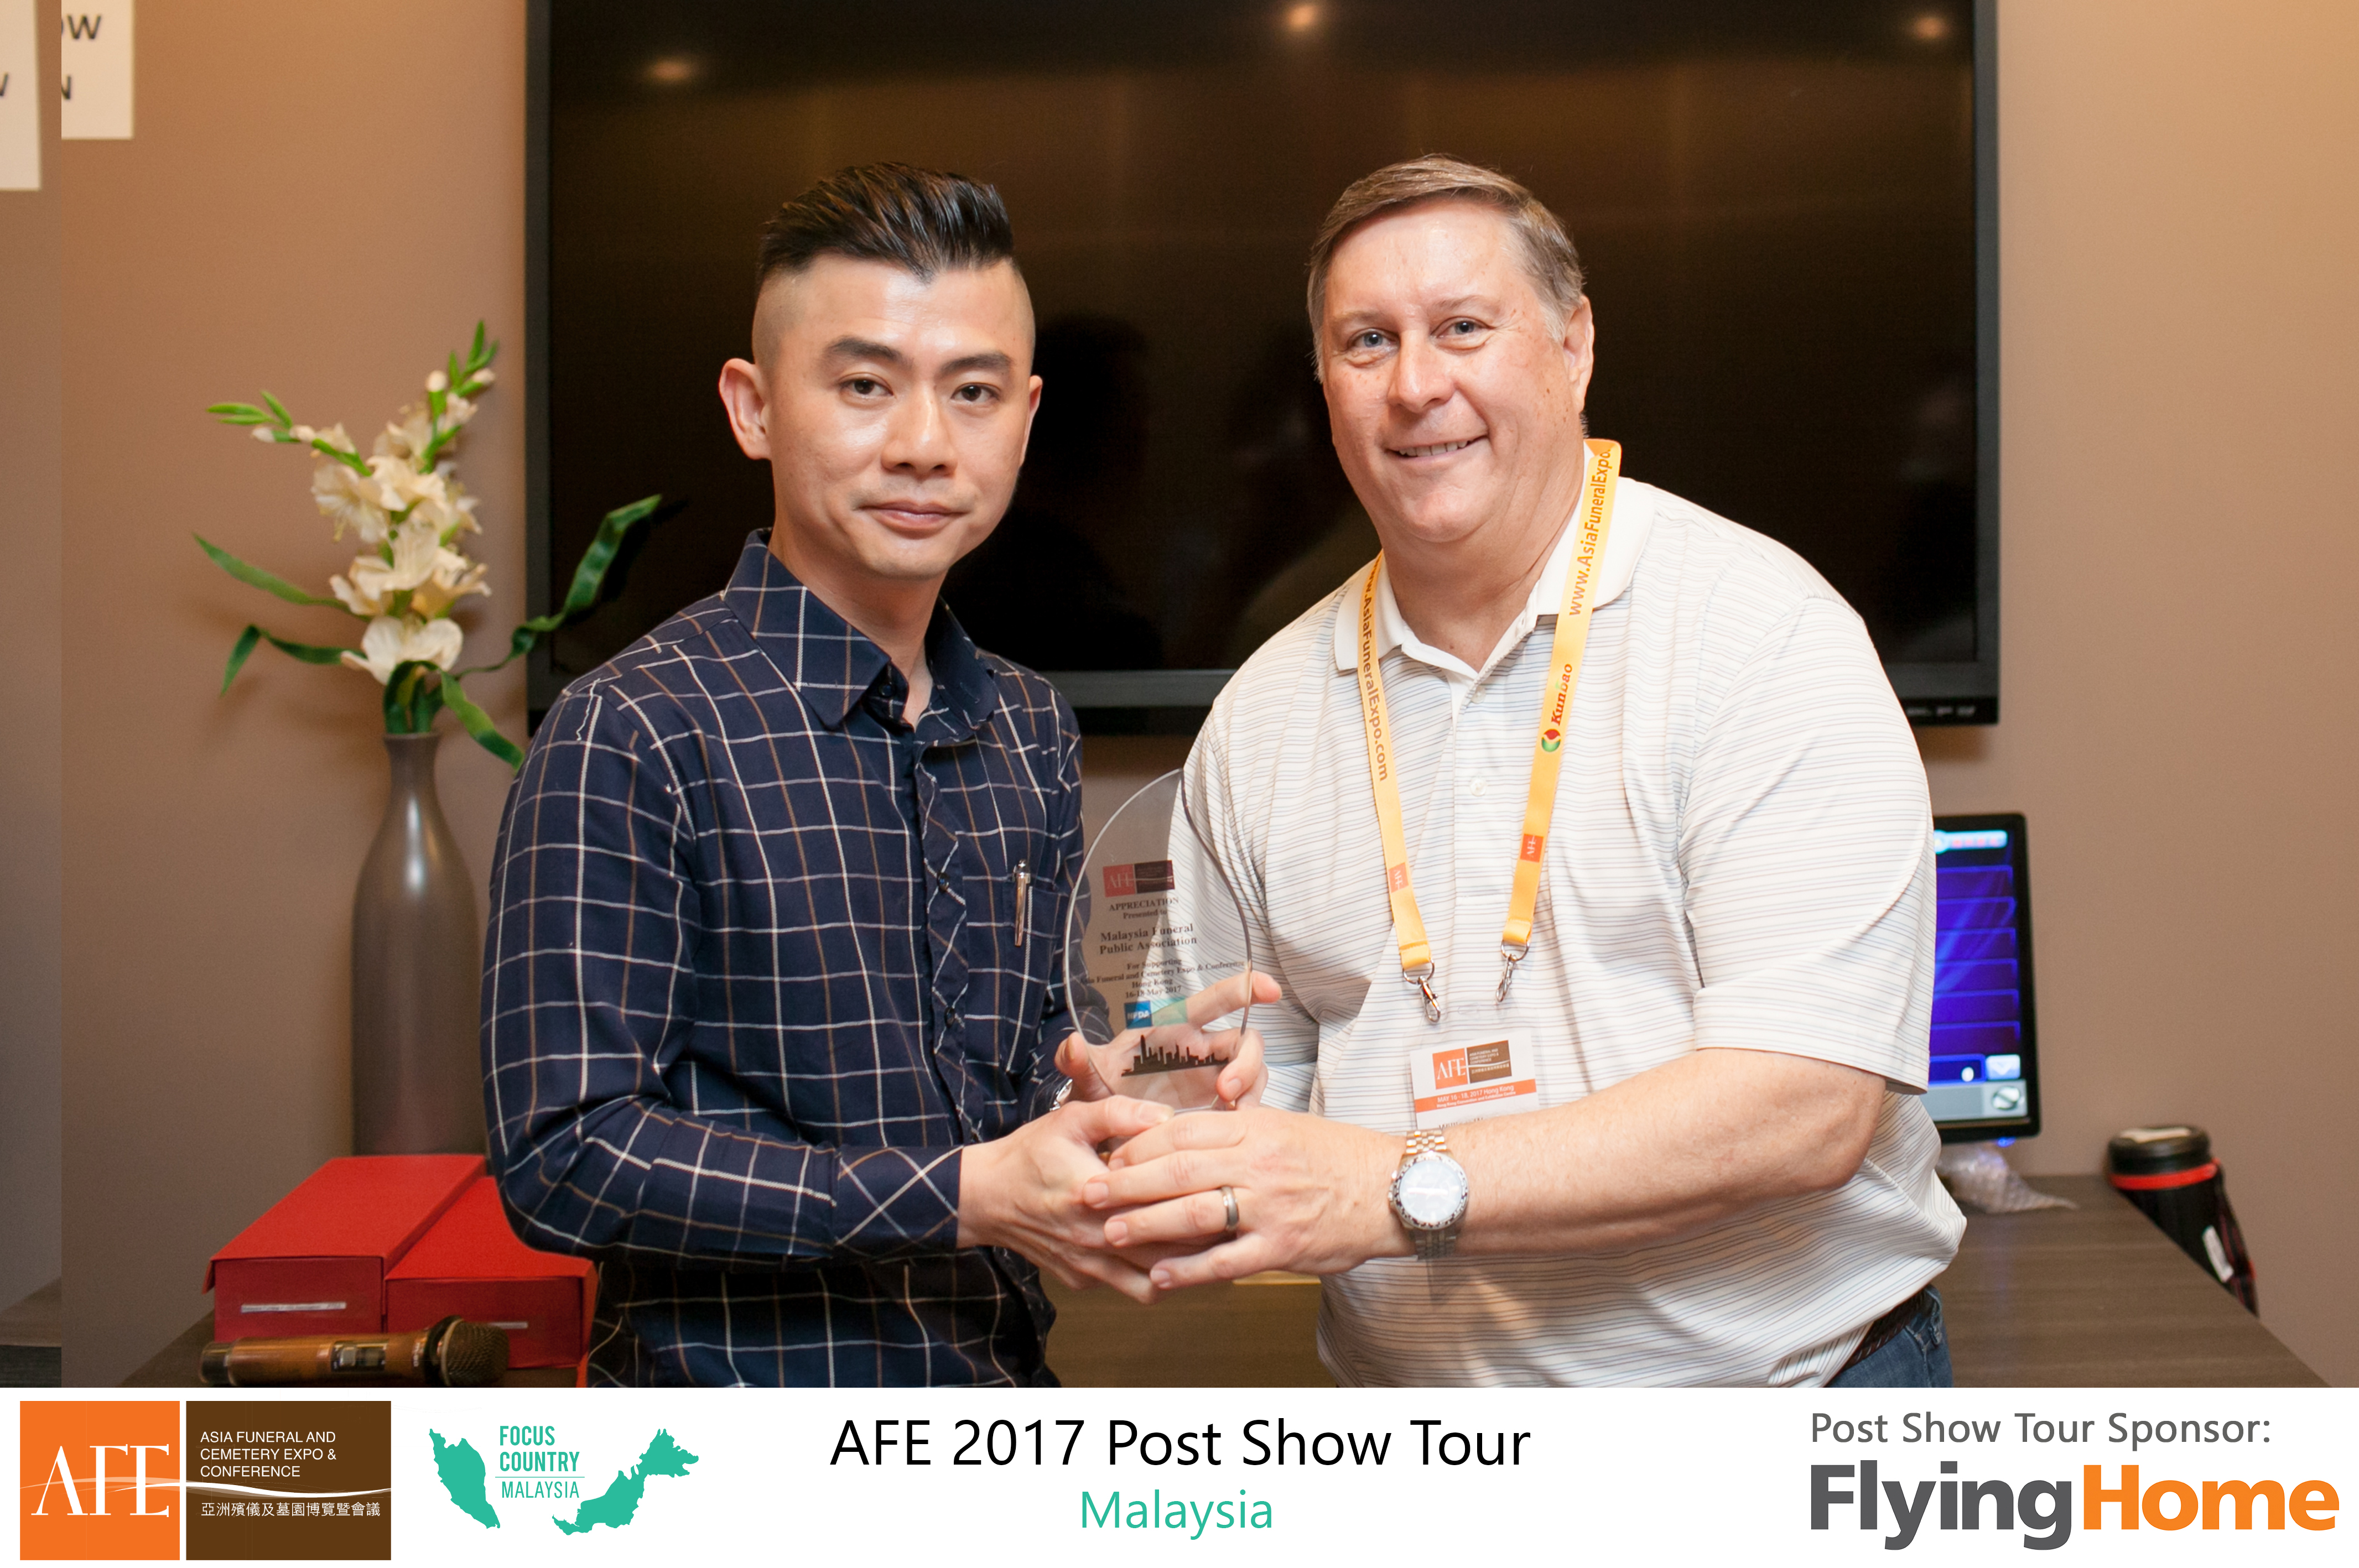 AFE Post Show Tour 2017 Day 1 - 17